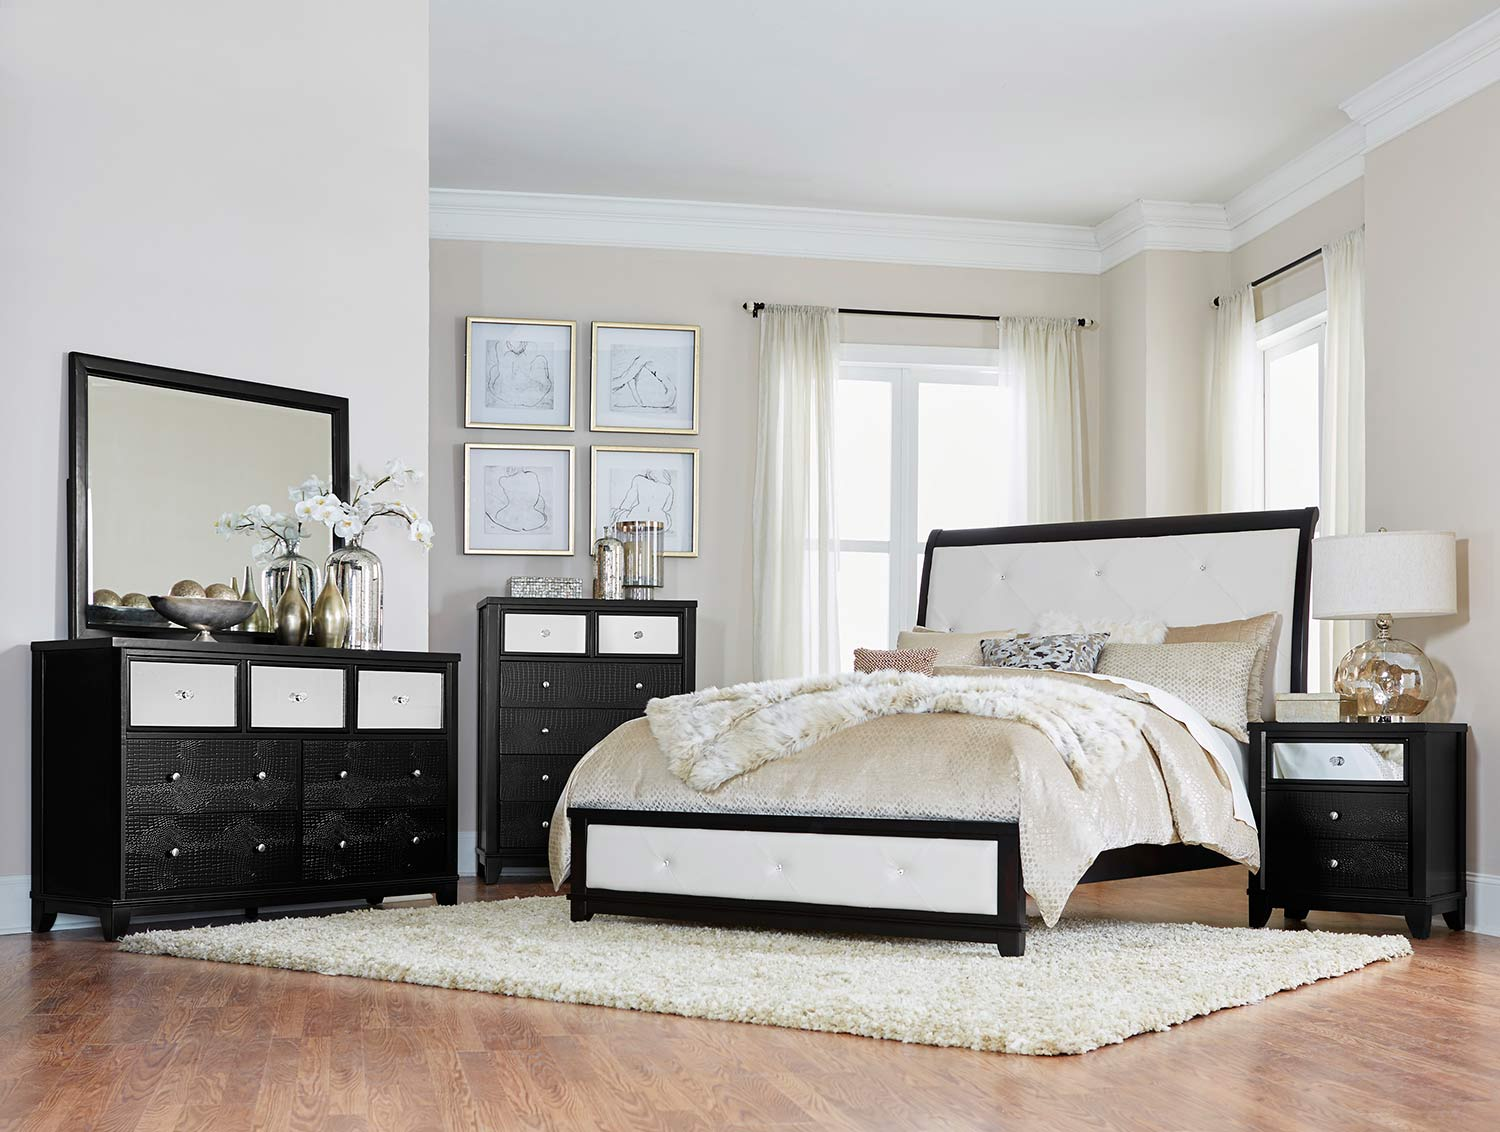 Homelegance Odelia Sleigh Bedroom Set - Black - Pearl White Bi-Cast Vinyl